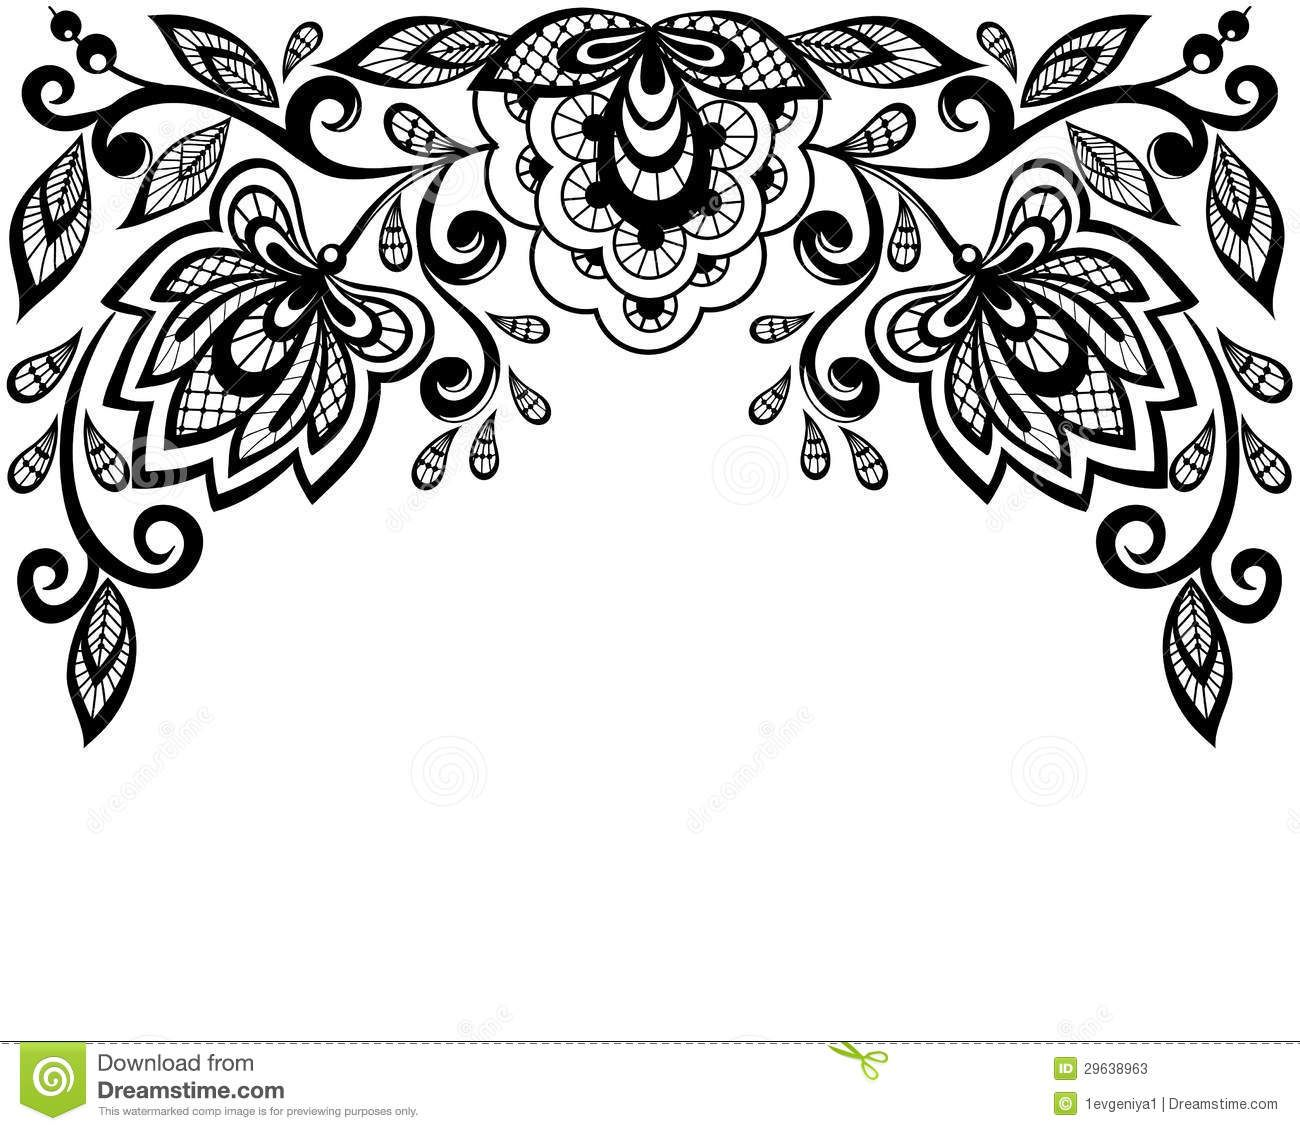 Leaves Clip Art Black And White Border.